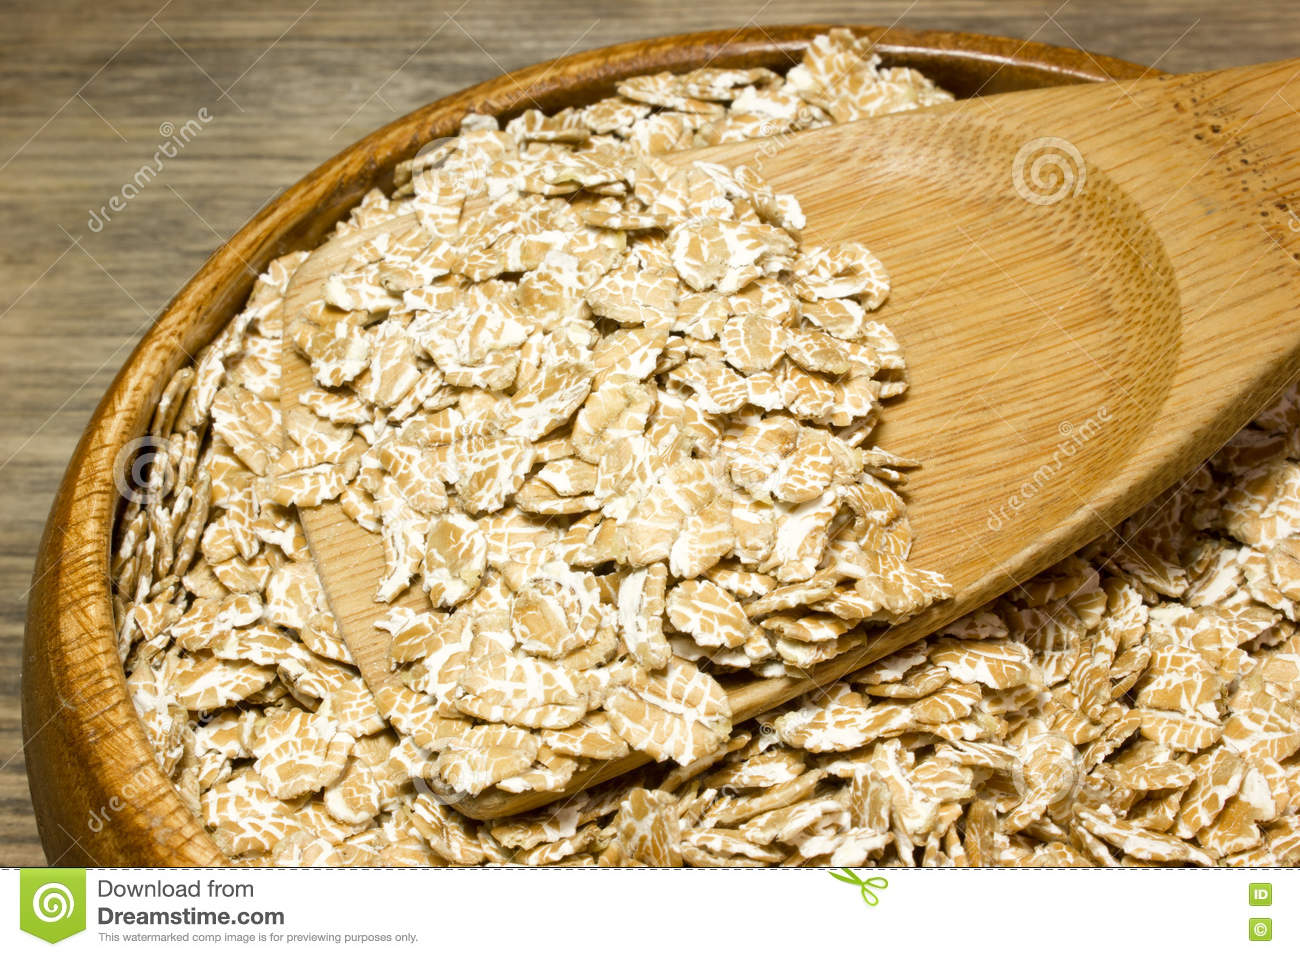 Wheat flakes in wooden spoon